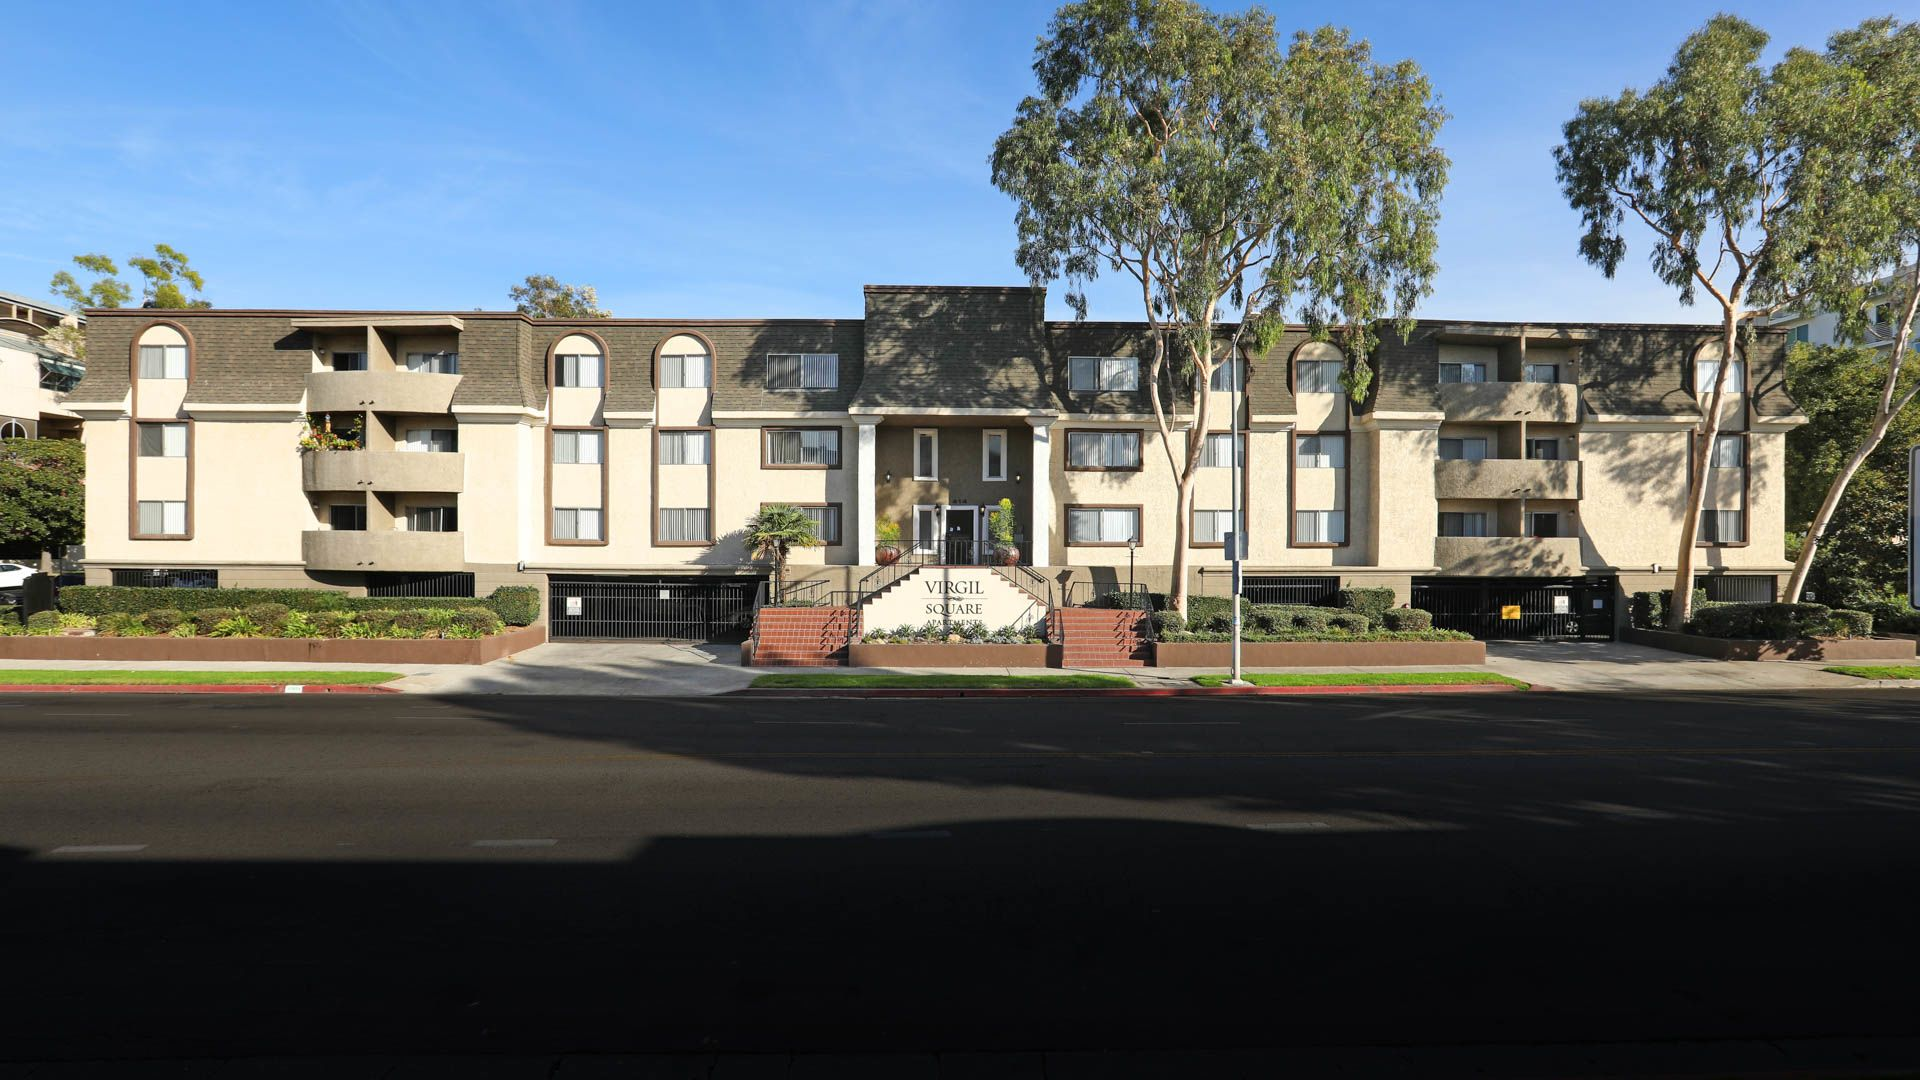 Virgil Square Apartments - Building Exterior